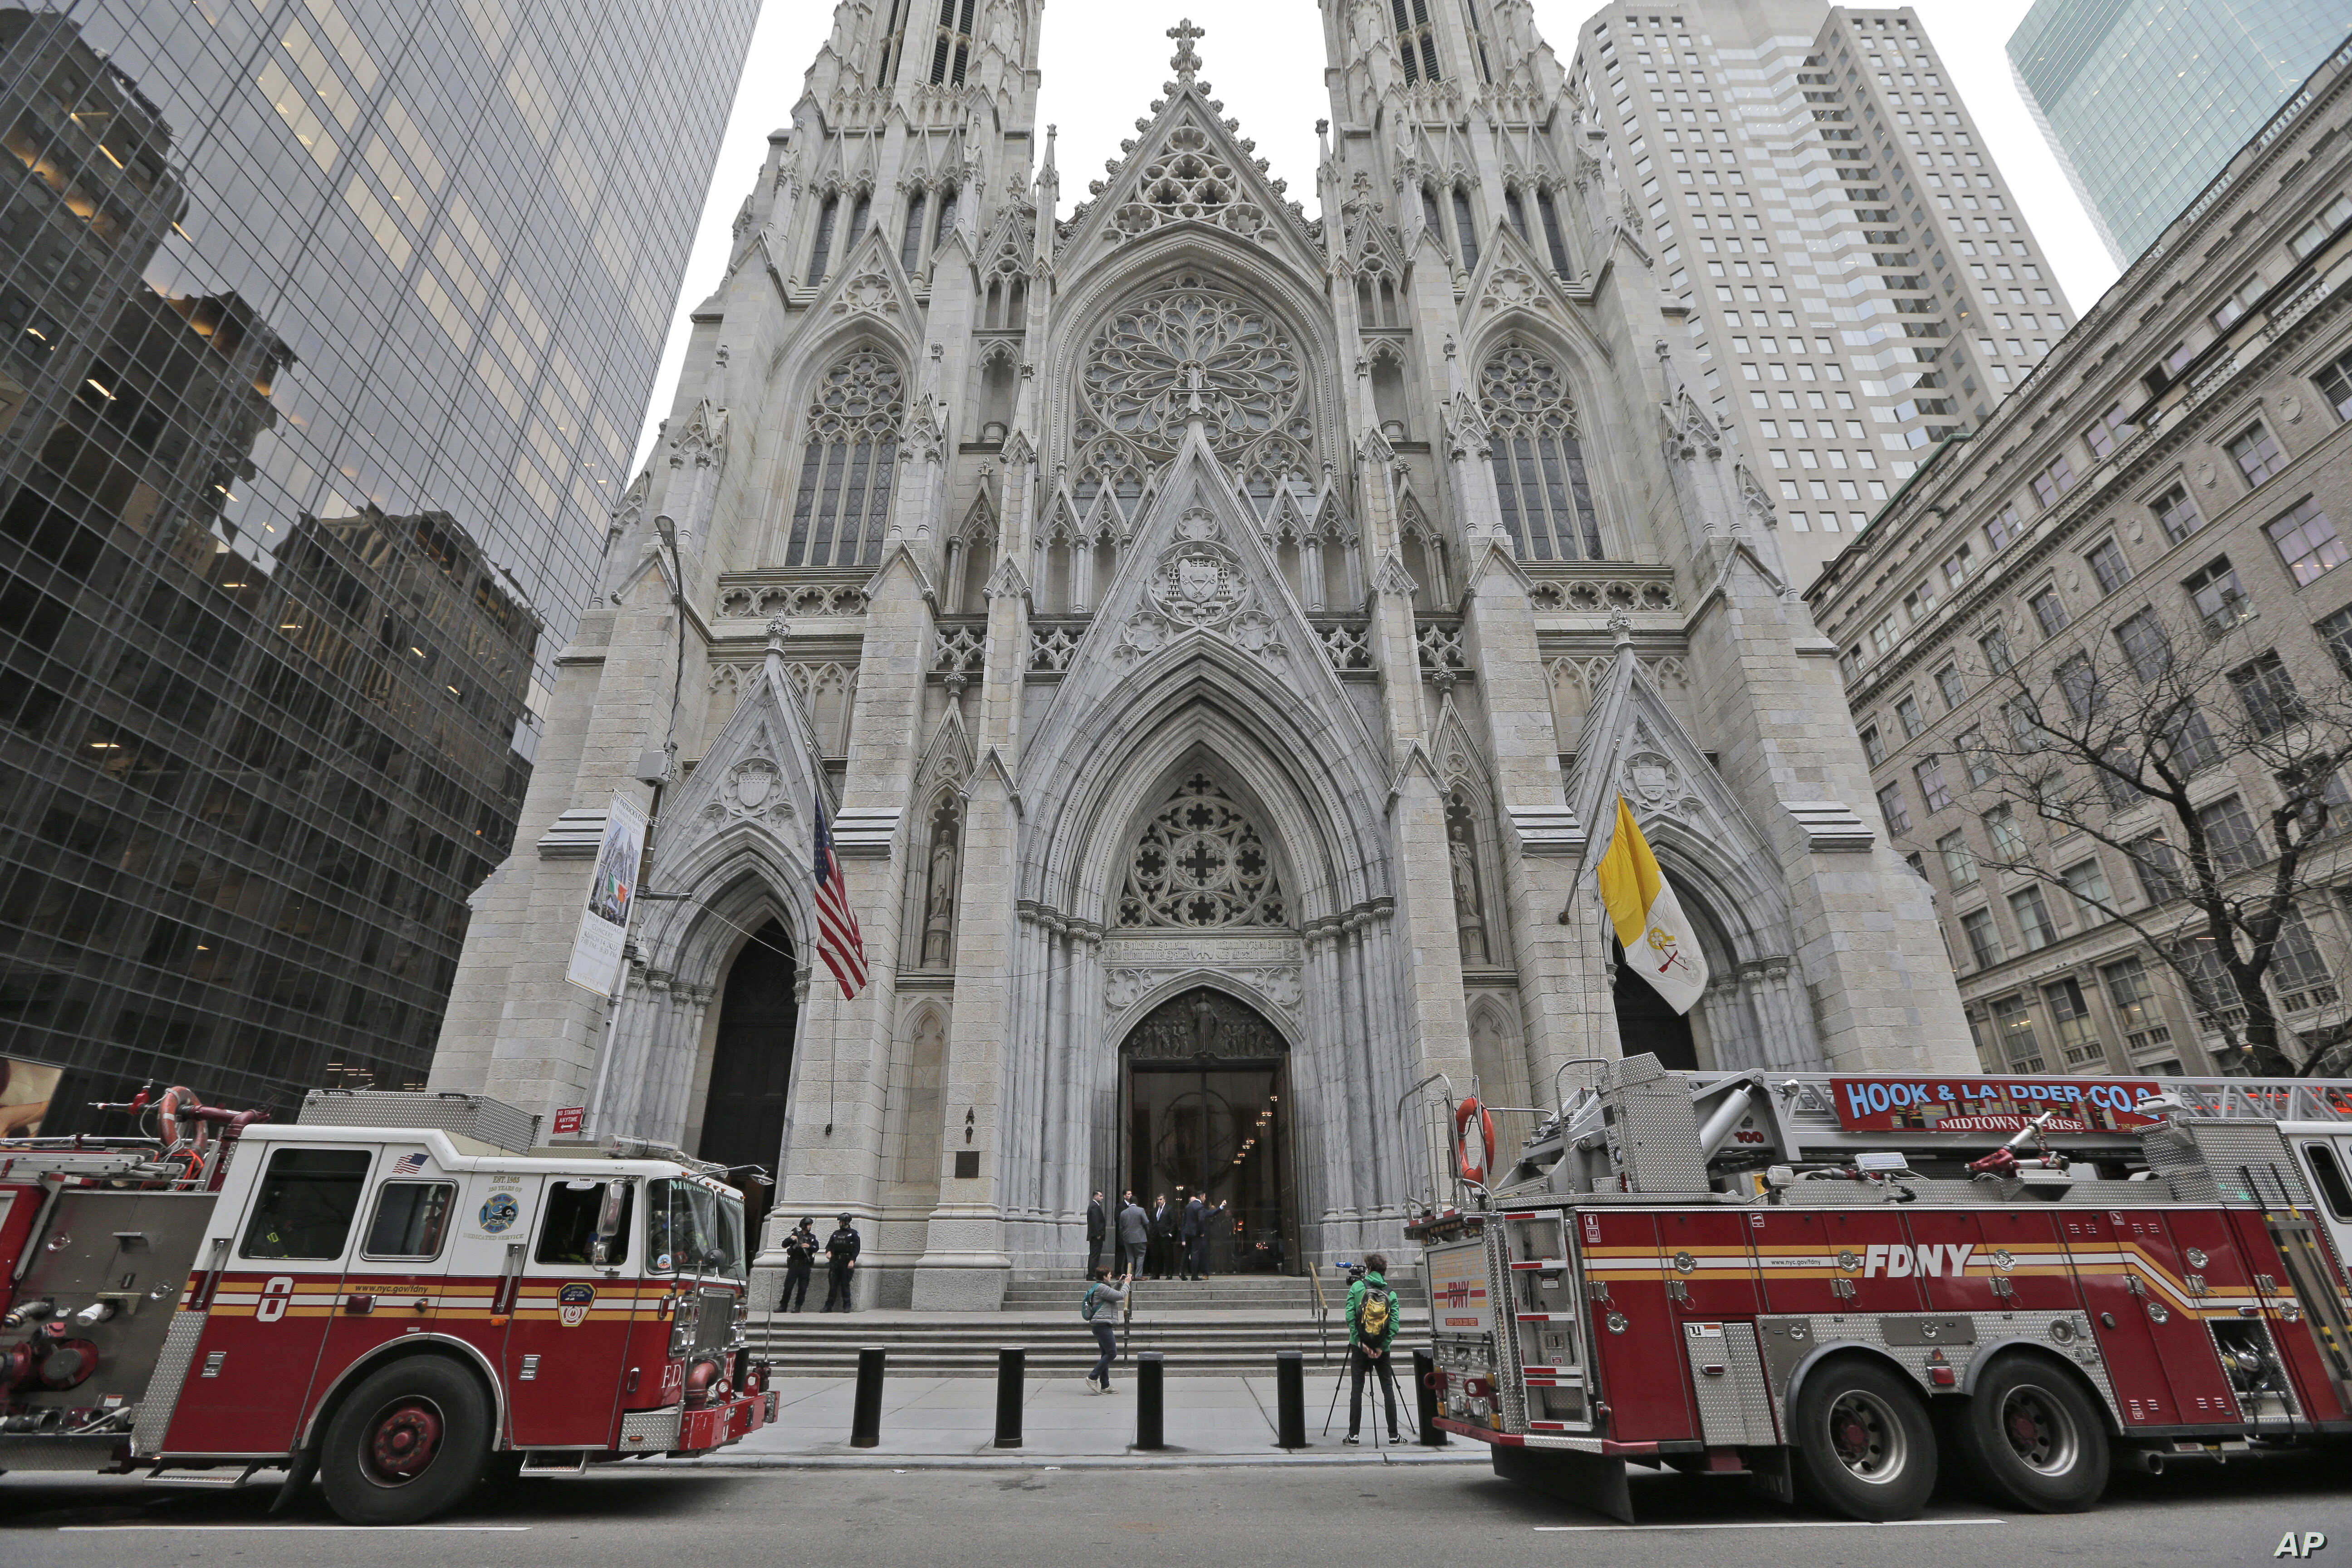 While firemen conduct an inspection, fire trucks are parked in front of St. Patrick's Cathedral in New York, April 18, 2019.